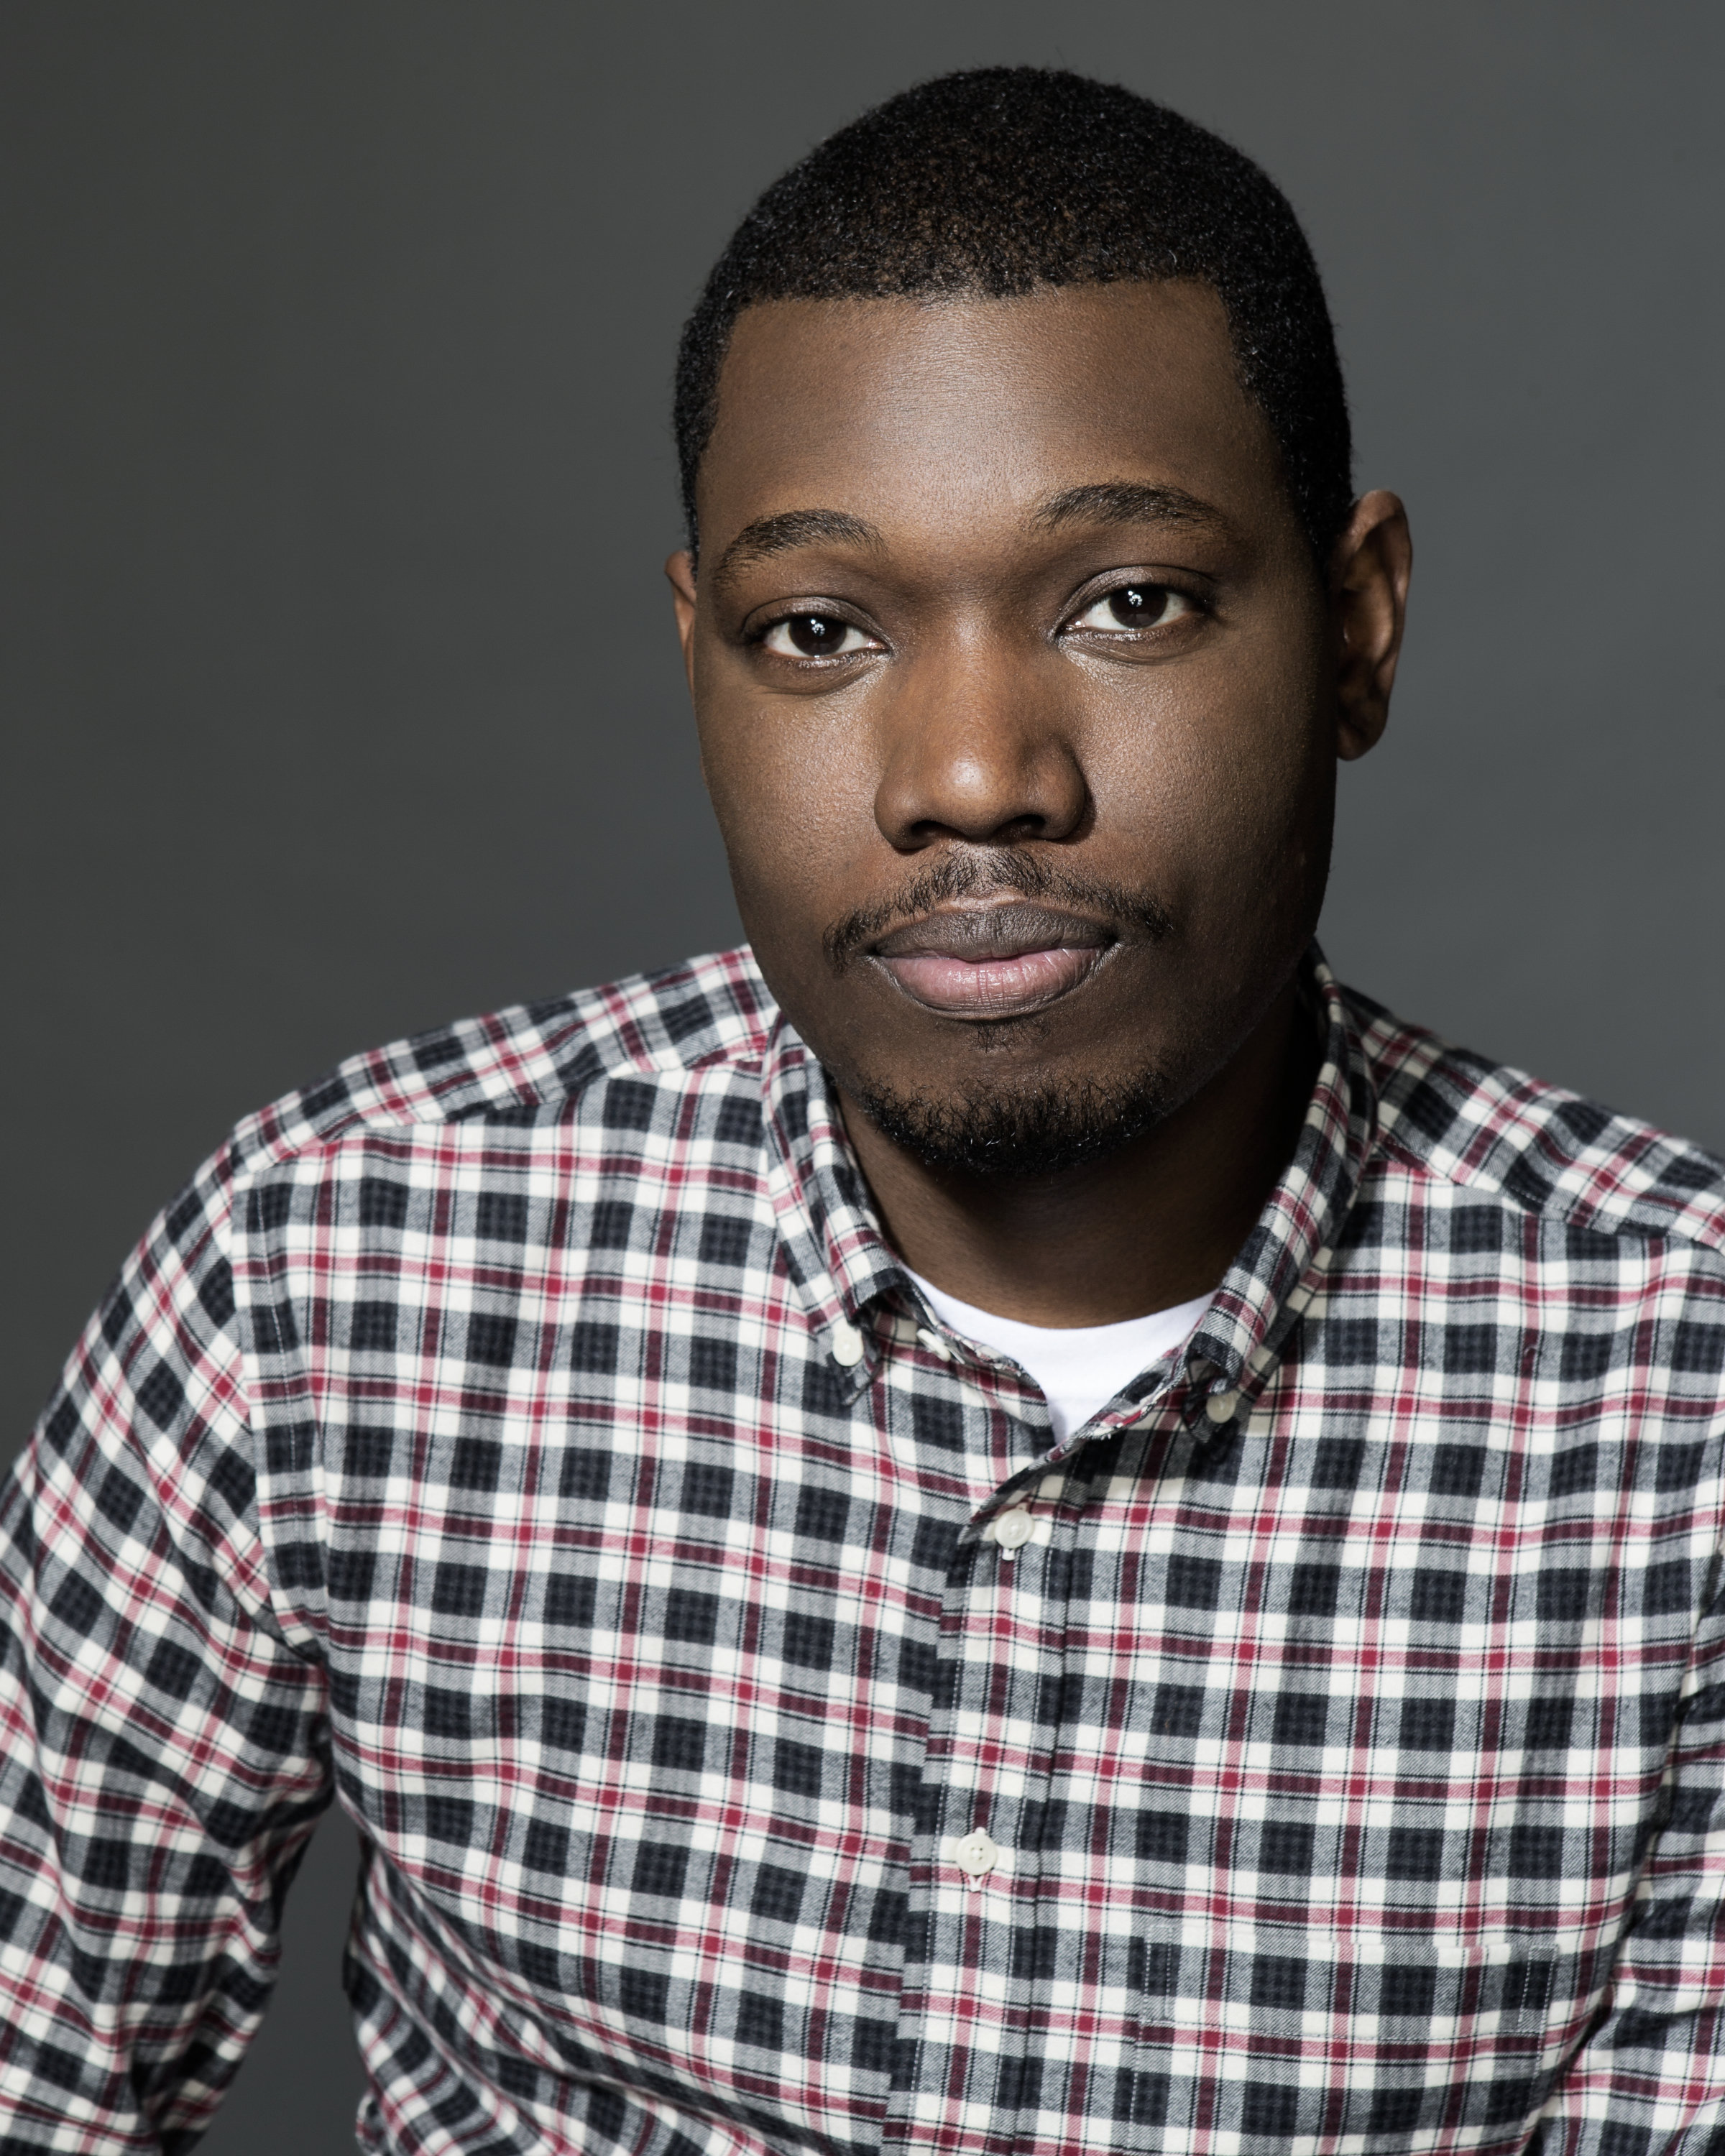 The 34-year old son of father Nathaniel Campbell and mother Rose Campbell, 187 cm tall Michael Che in 2018 photo